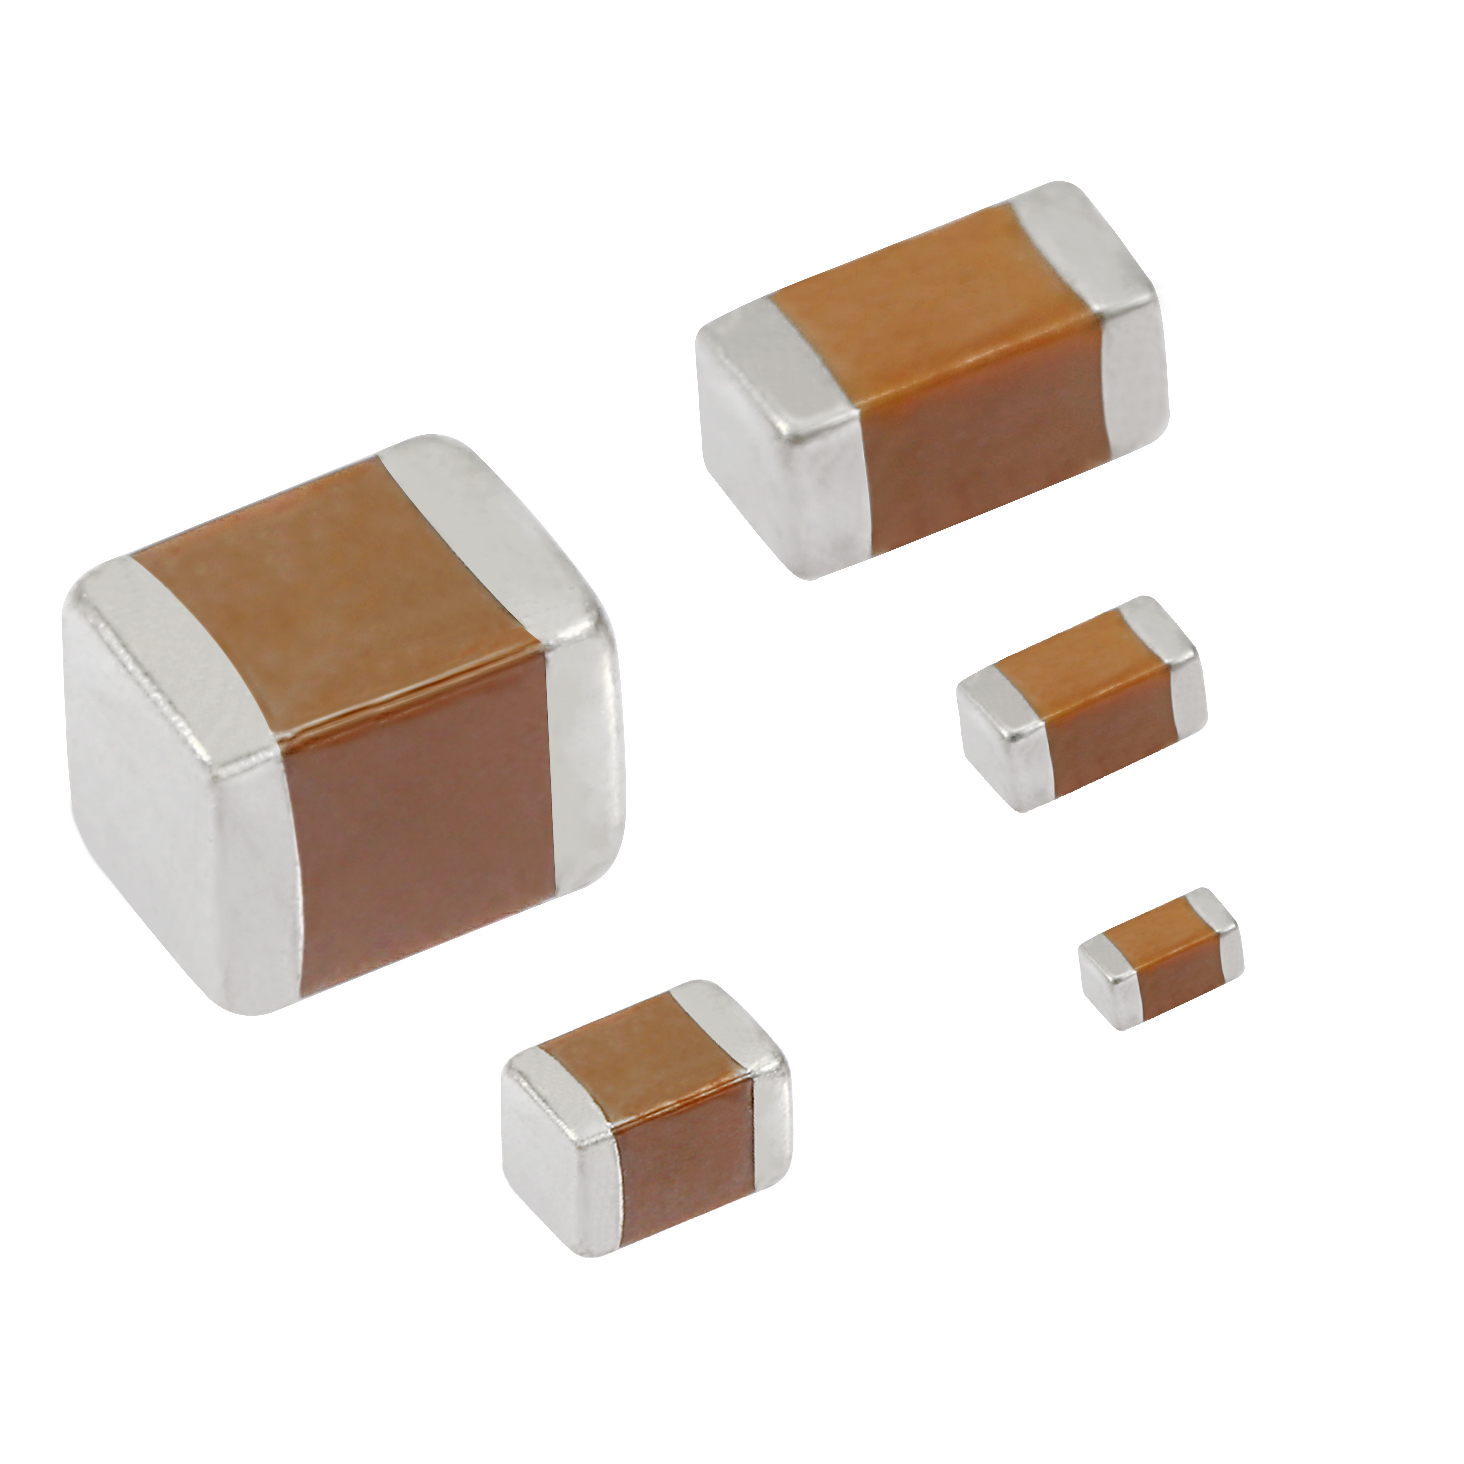 SAMWHA Chip capacitors